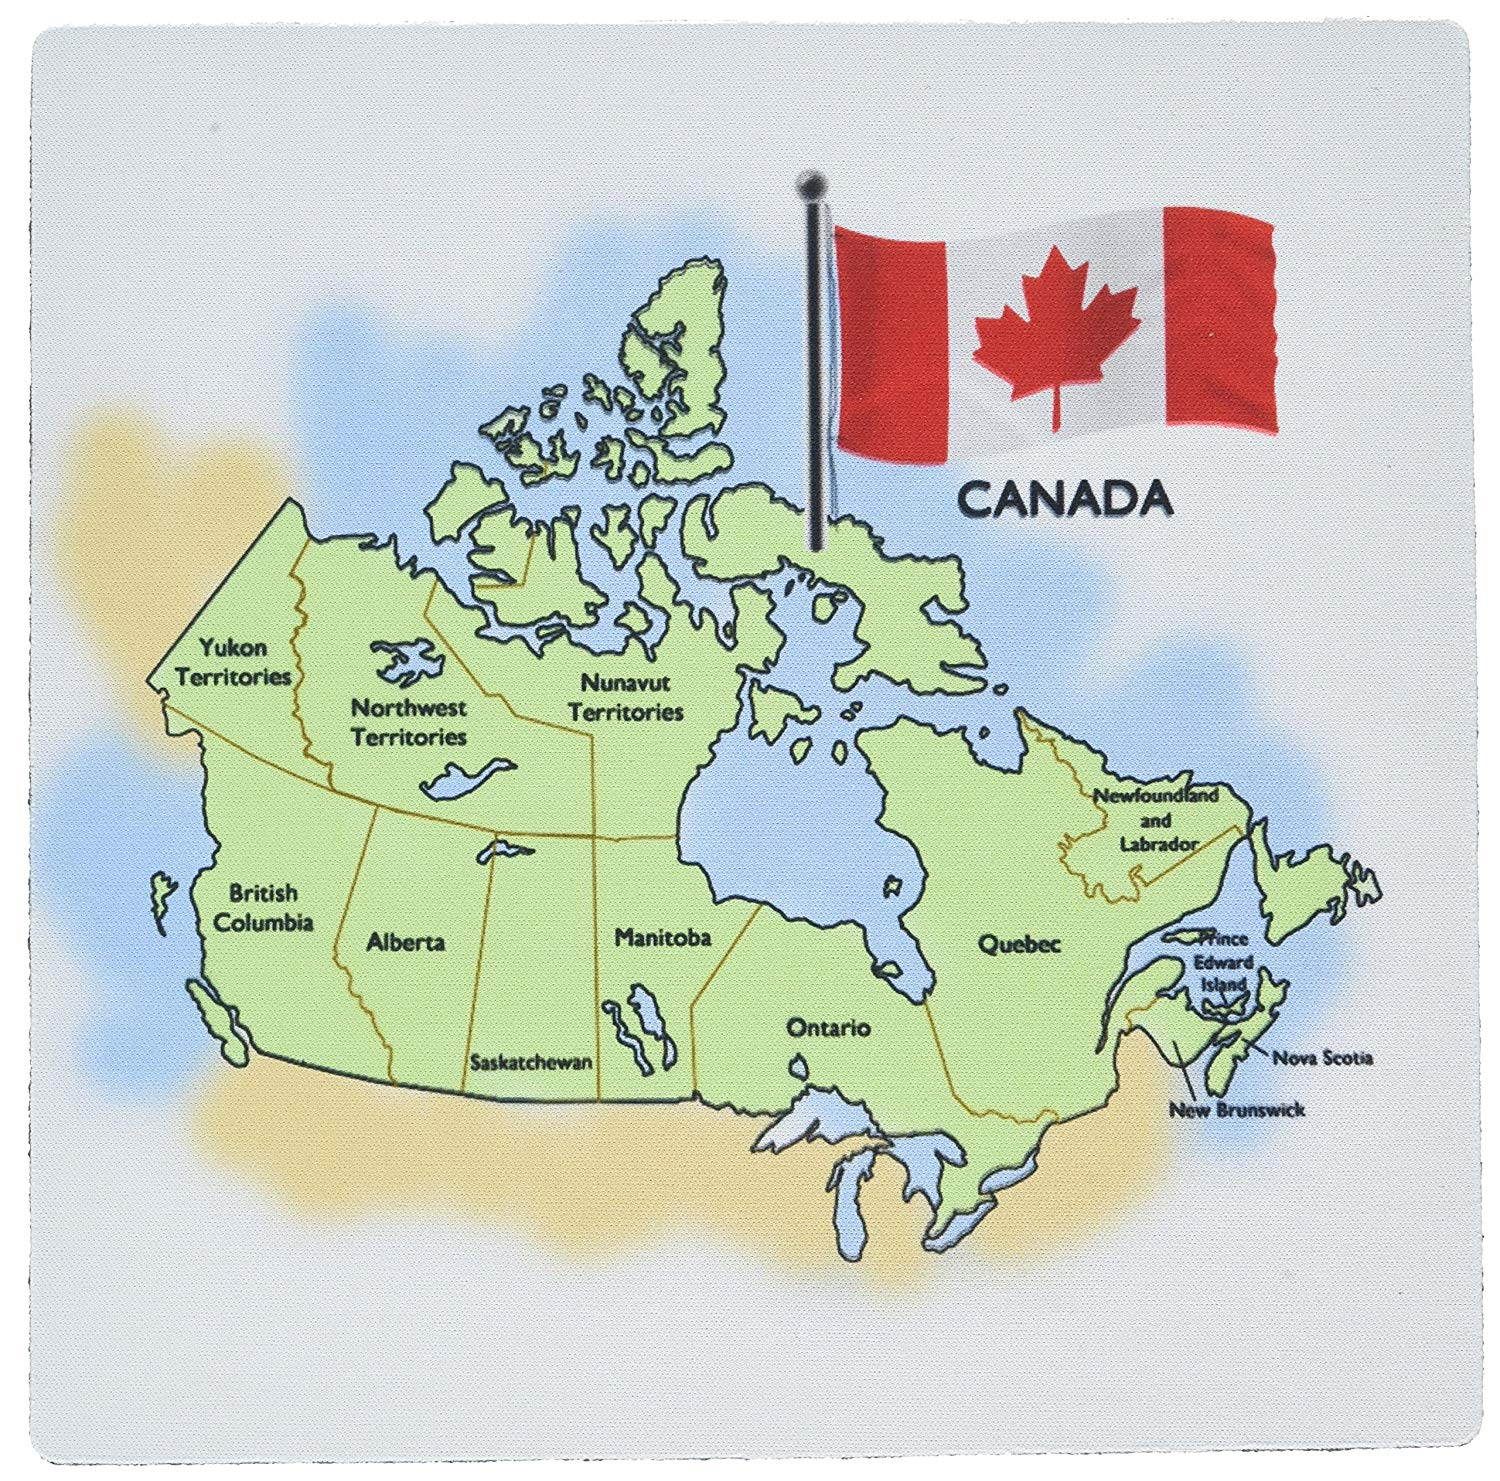 Map Of Canada Eastern Provinces.Cheap Canada Eastern Provinces Find Canada Eastern Provinces Deals